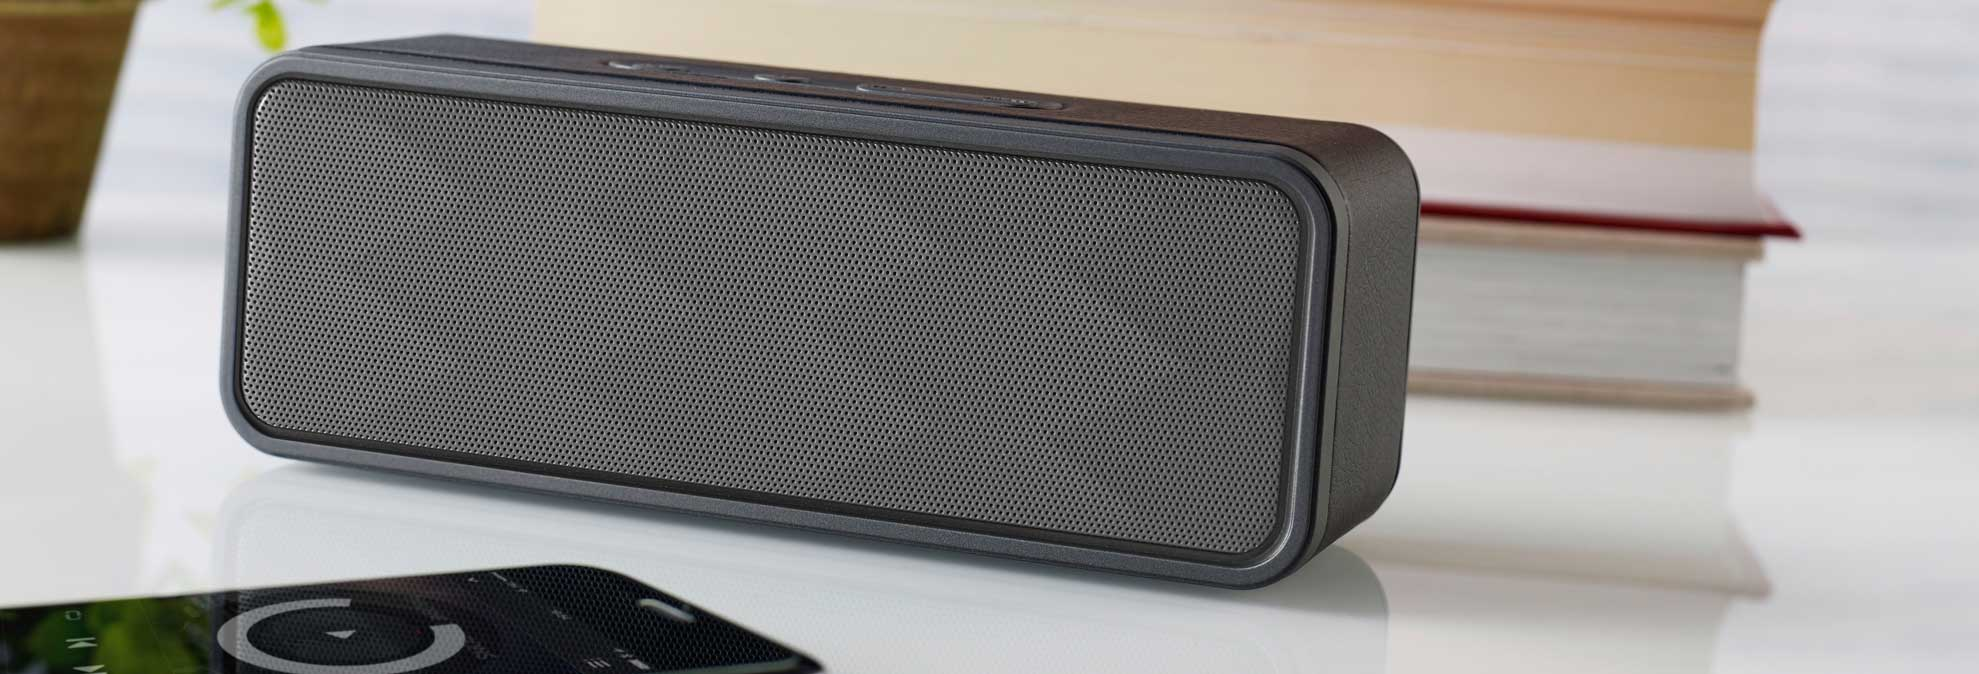 Best Wireless Speakers for People Who Want Great Sound